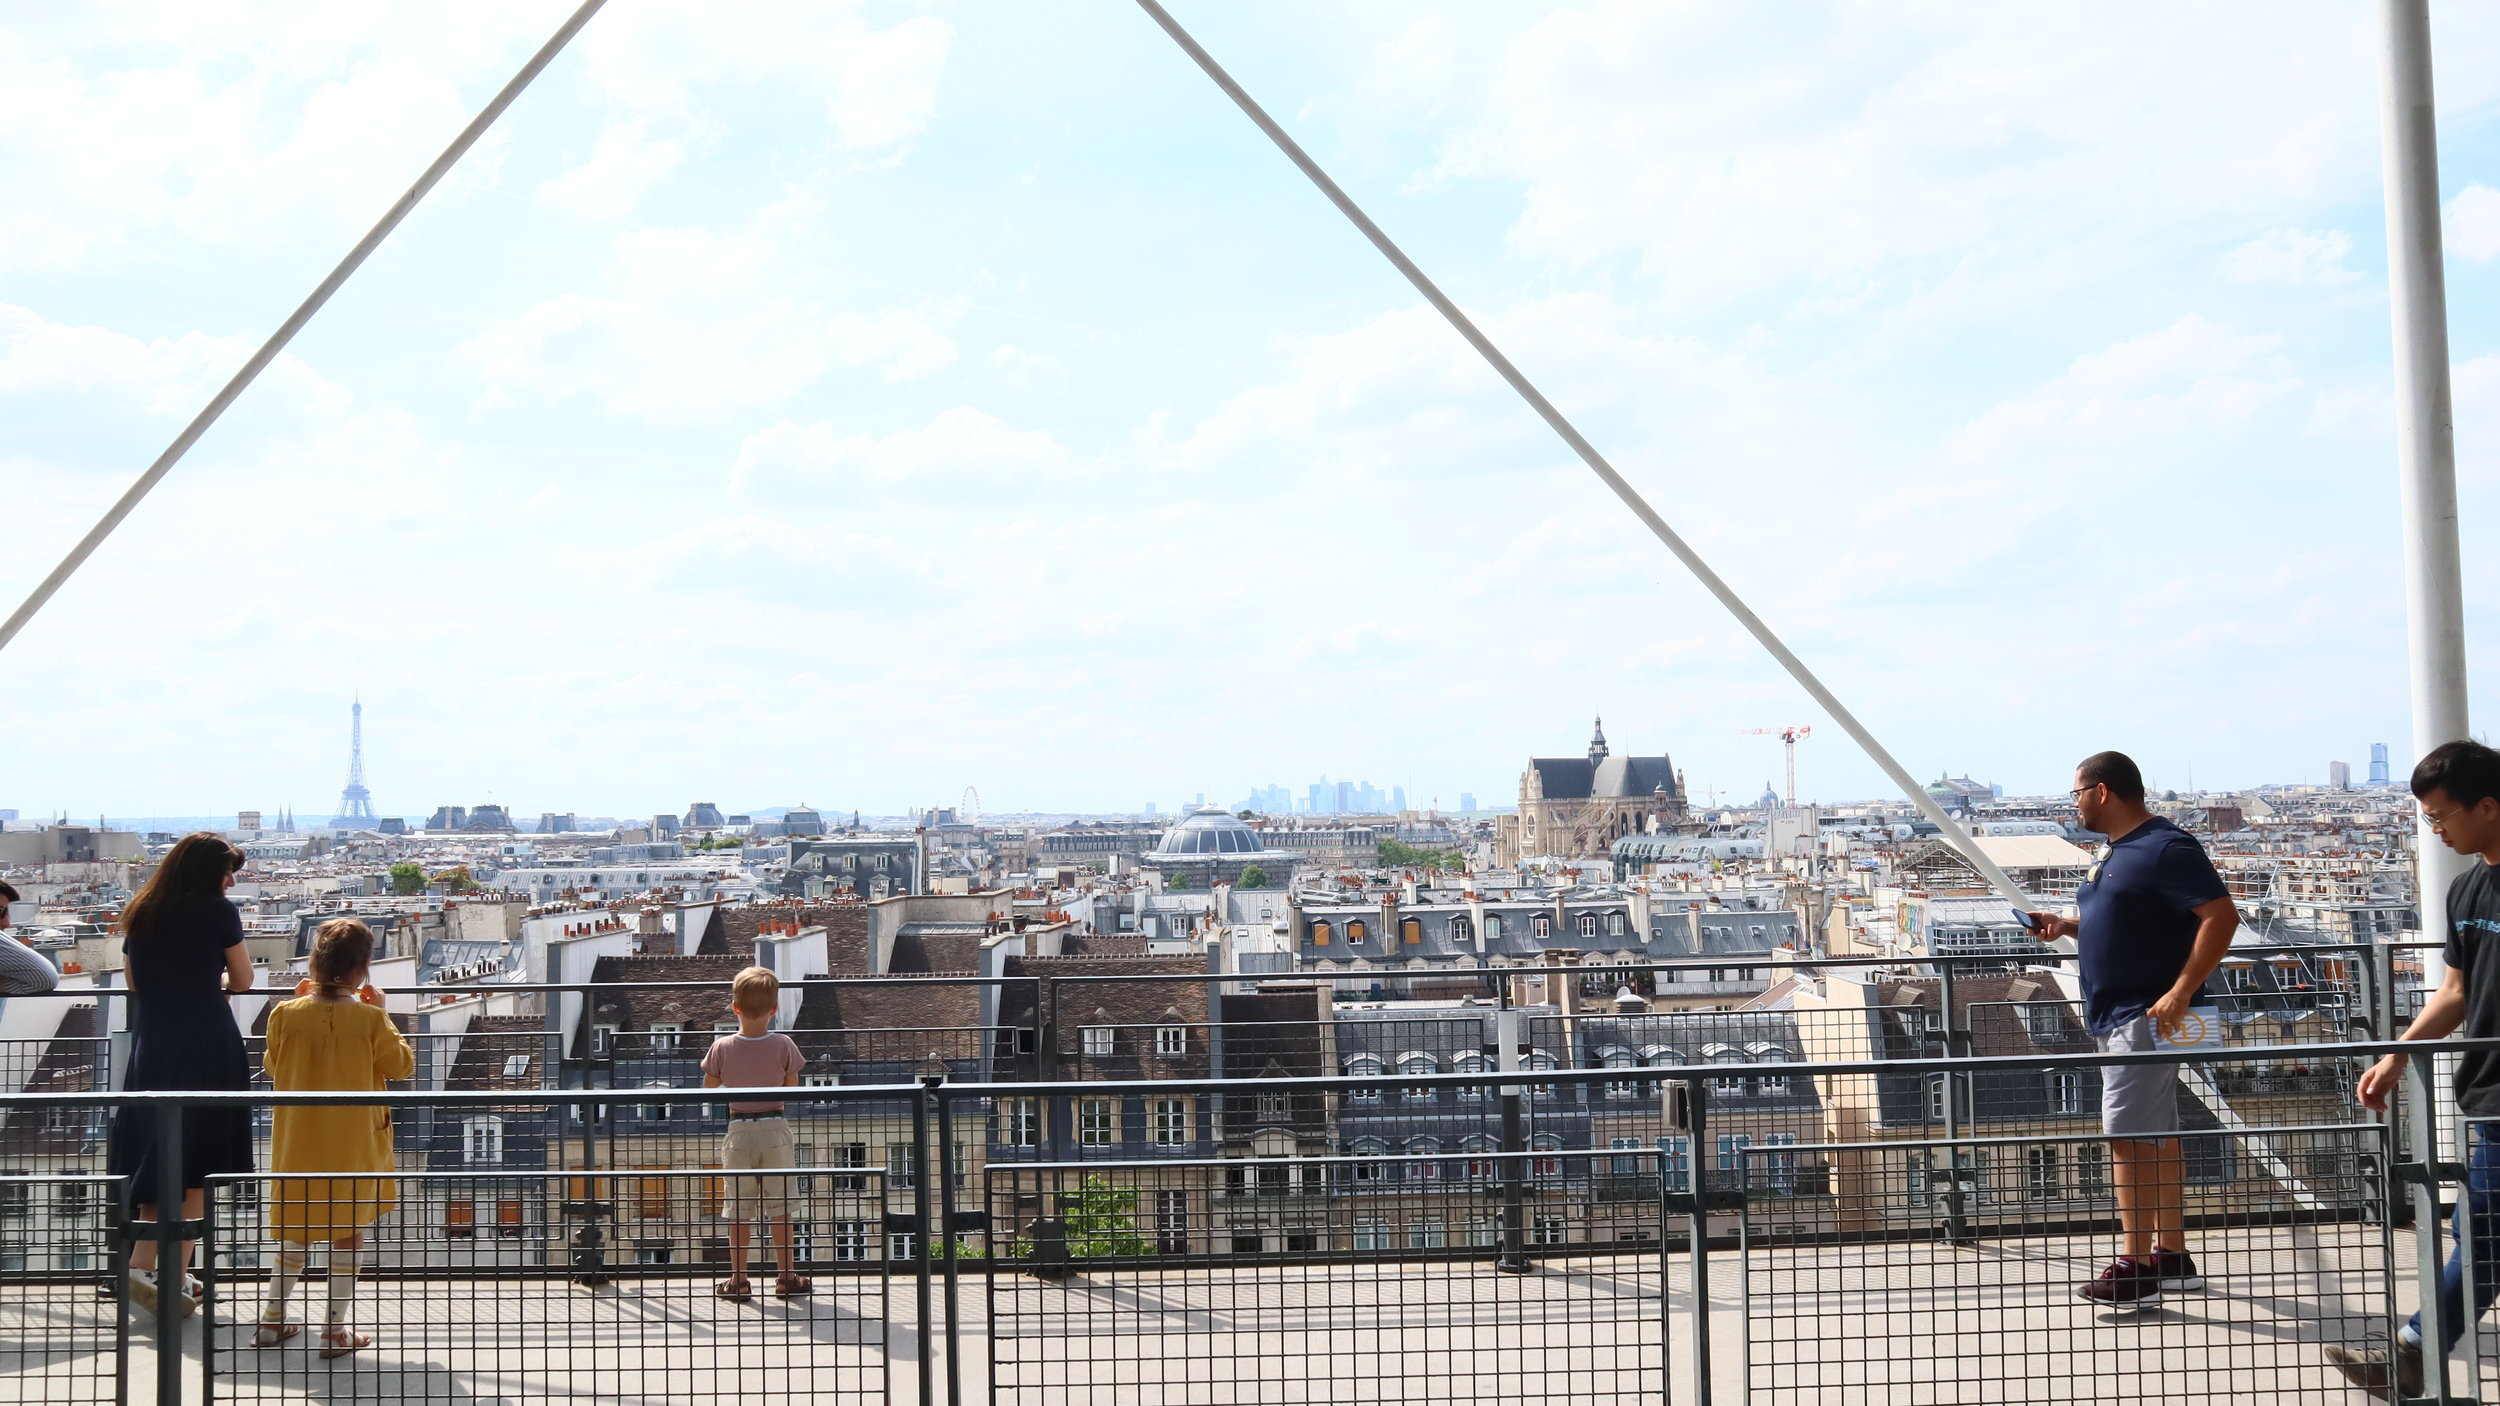 Rooftop view from Pompidou